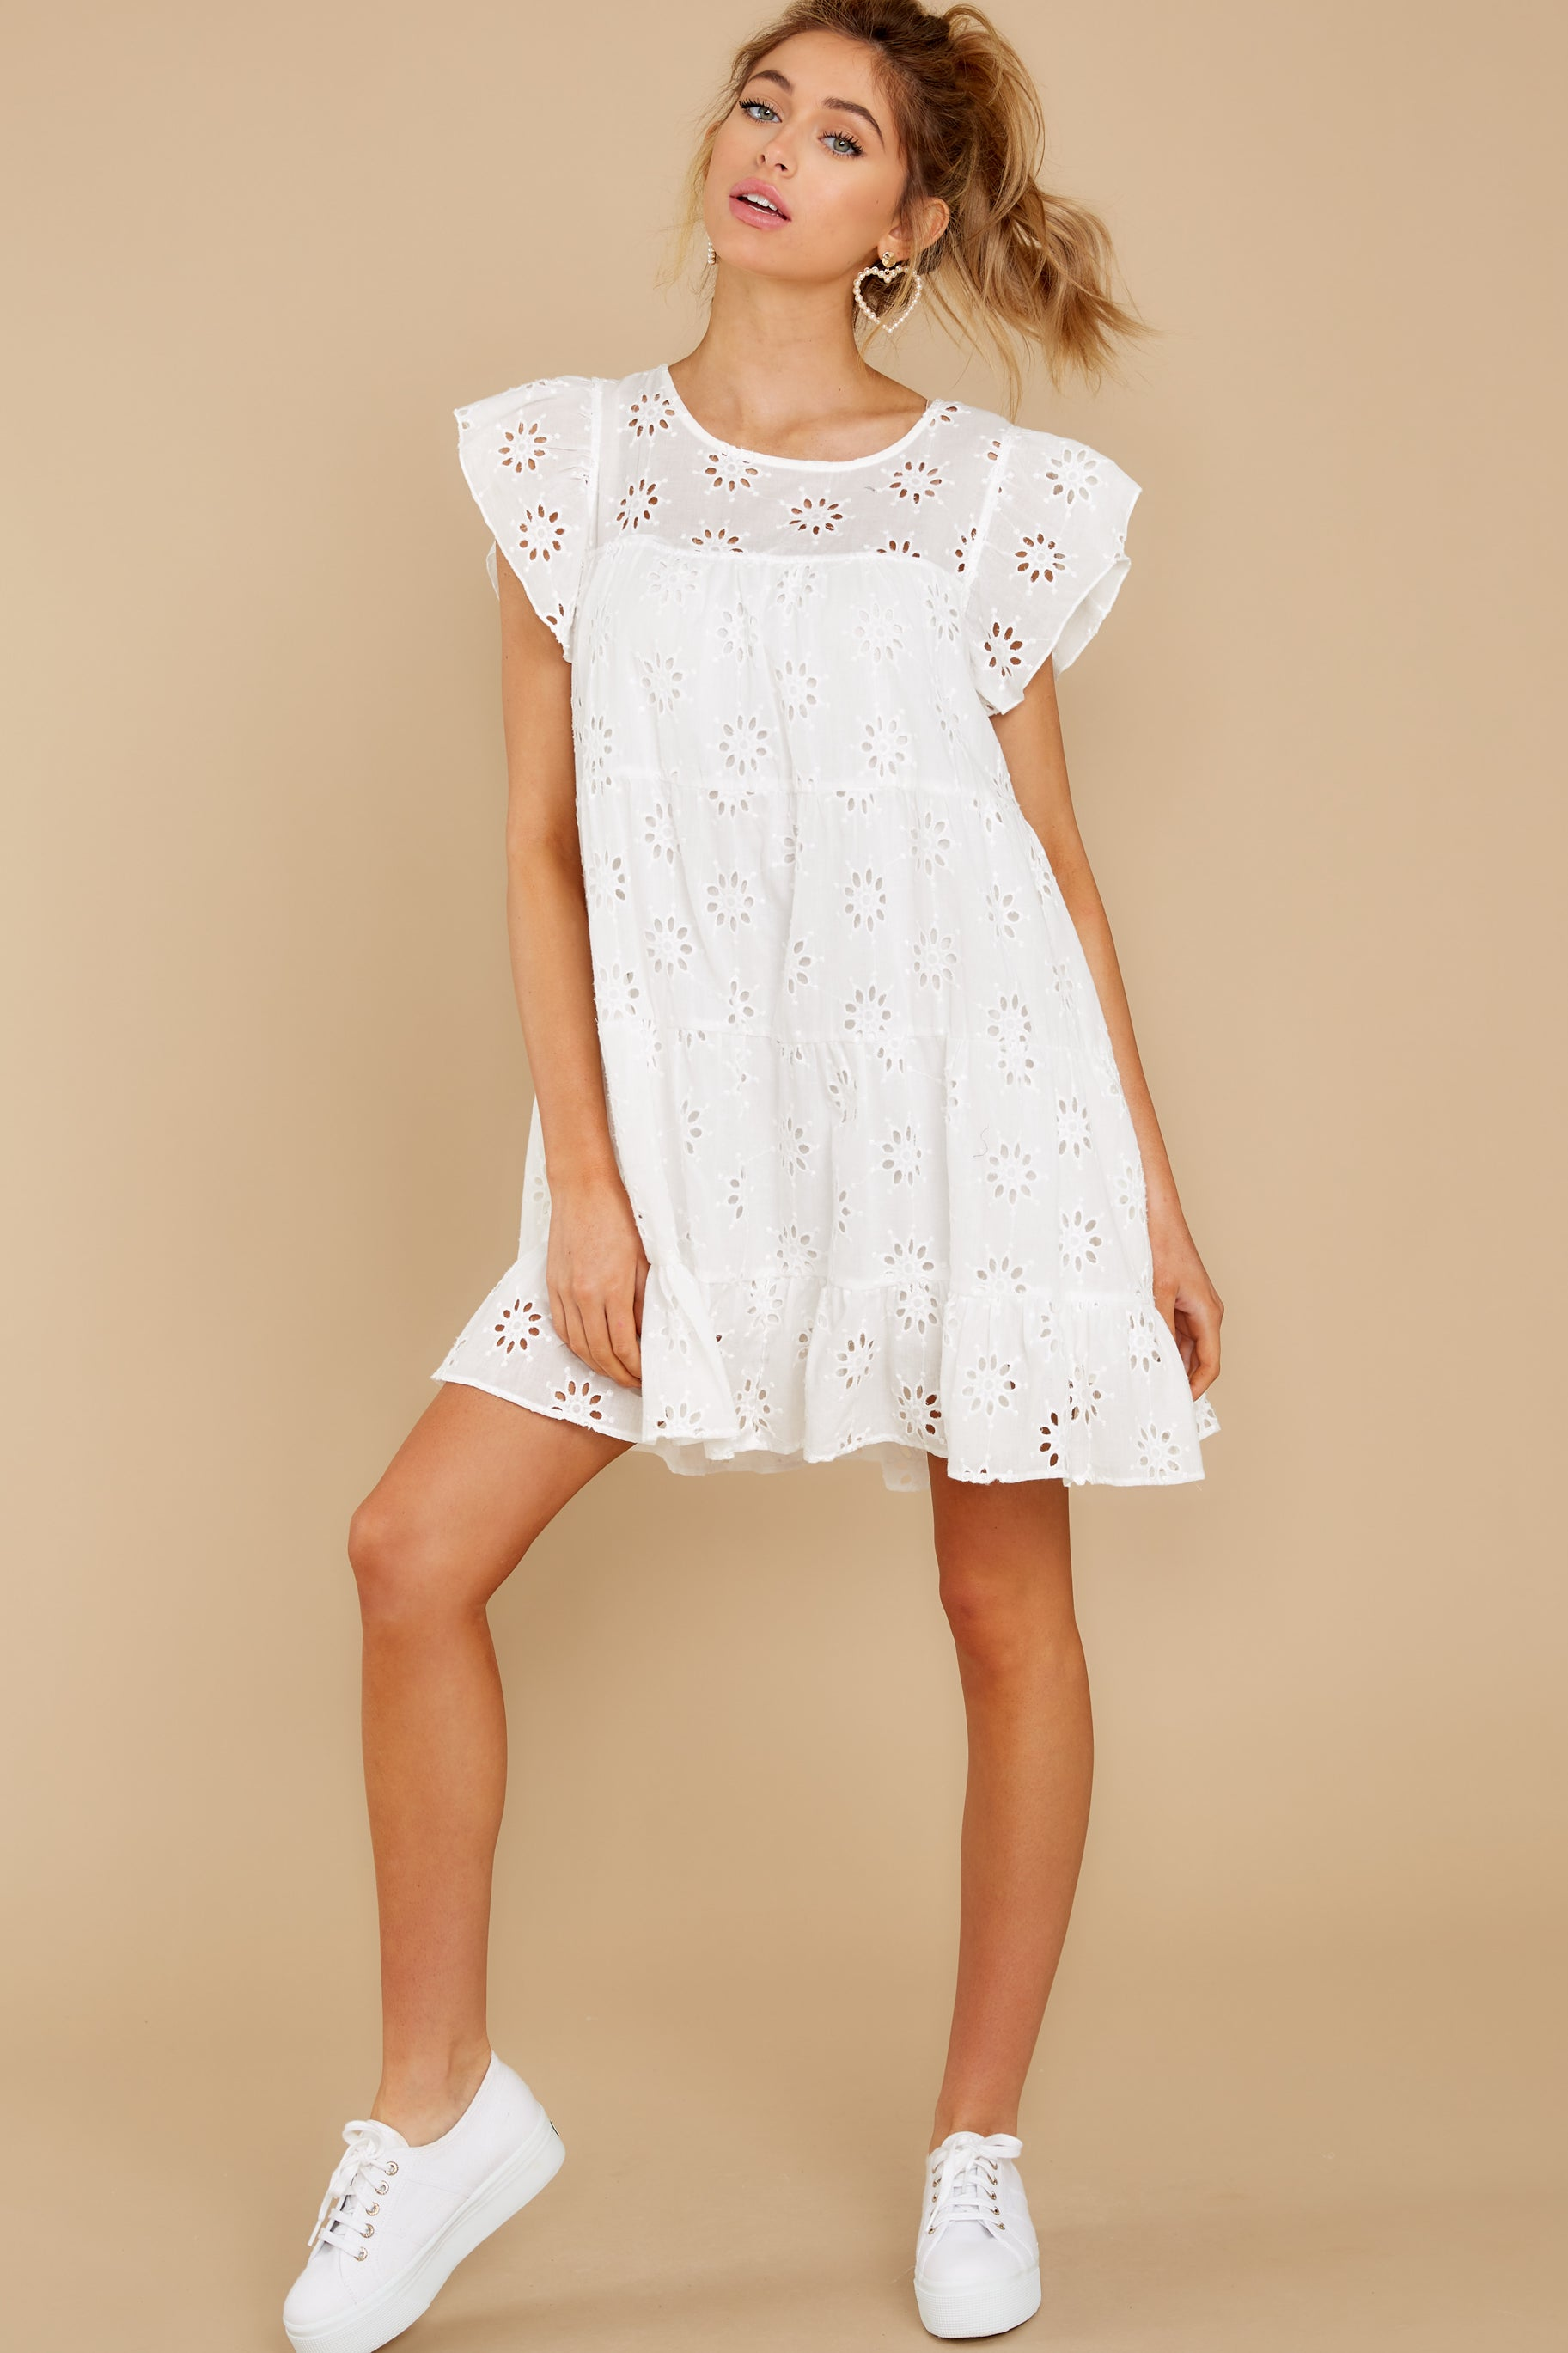 2 Eye For An Eyelet White Dress at reddress.com